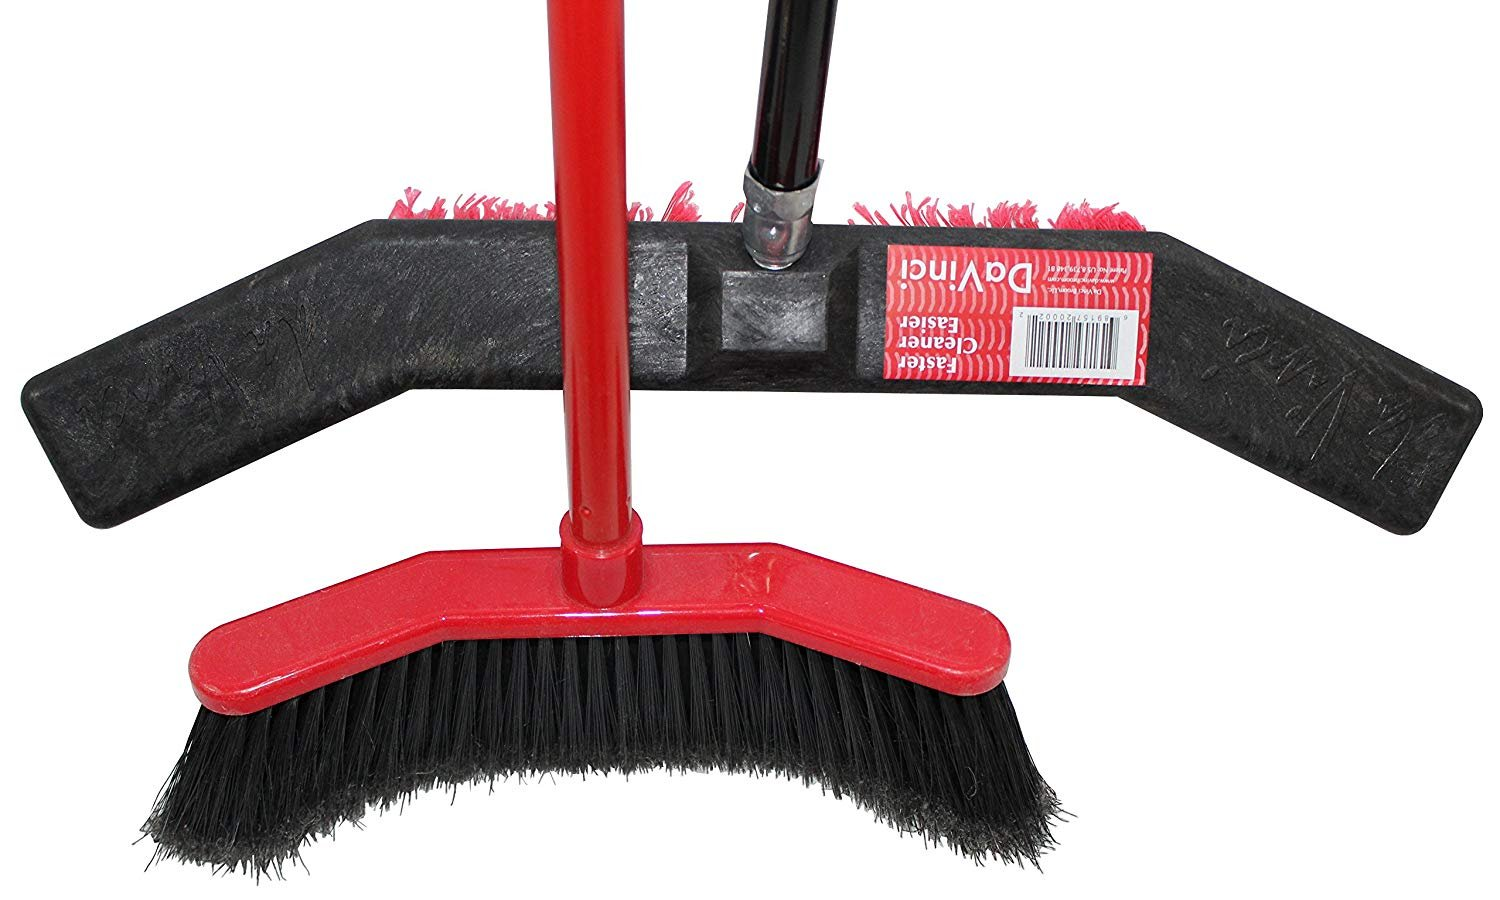 ROOT ASSASSIN House Broom & Push Broom, Keeps Debris Inside Broom, Best for Sweeping Kitchen Floors, Patios, Garages, Shops, Tile, Large Areas, and Wood Floors. Durable, Large, Light (Combo Pack)